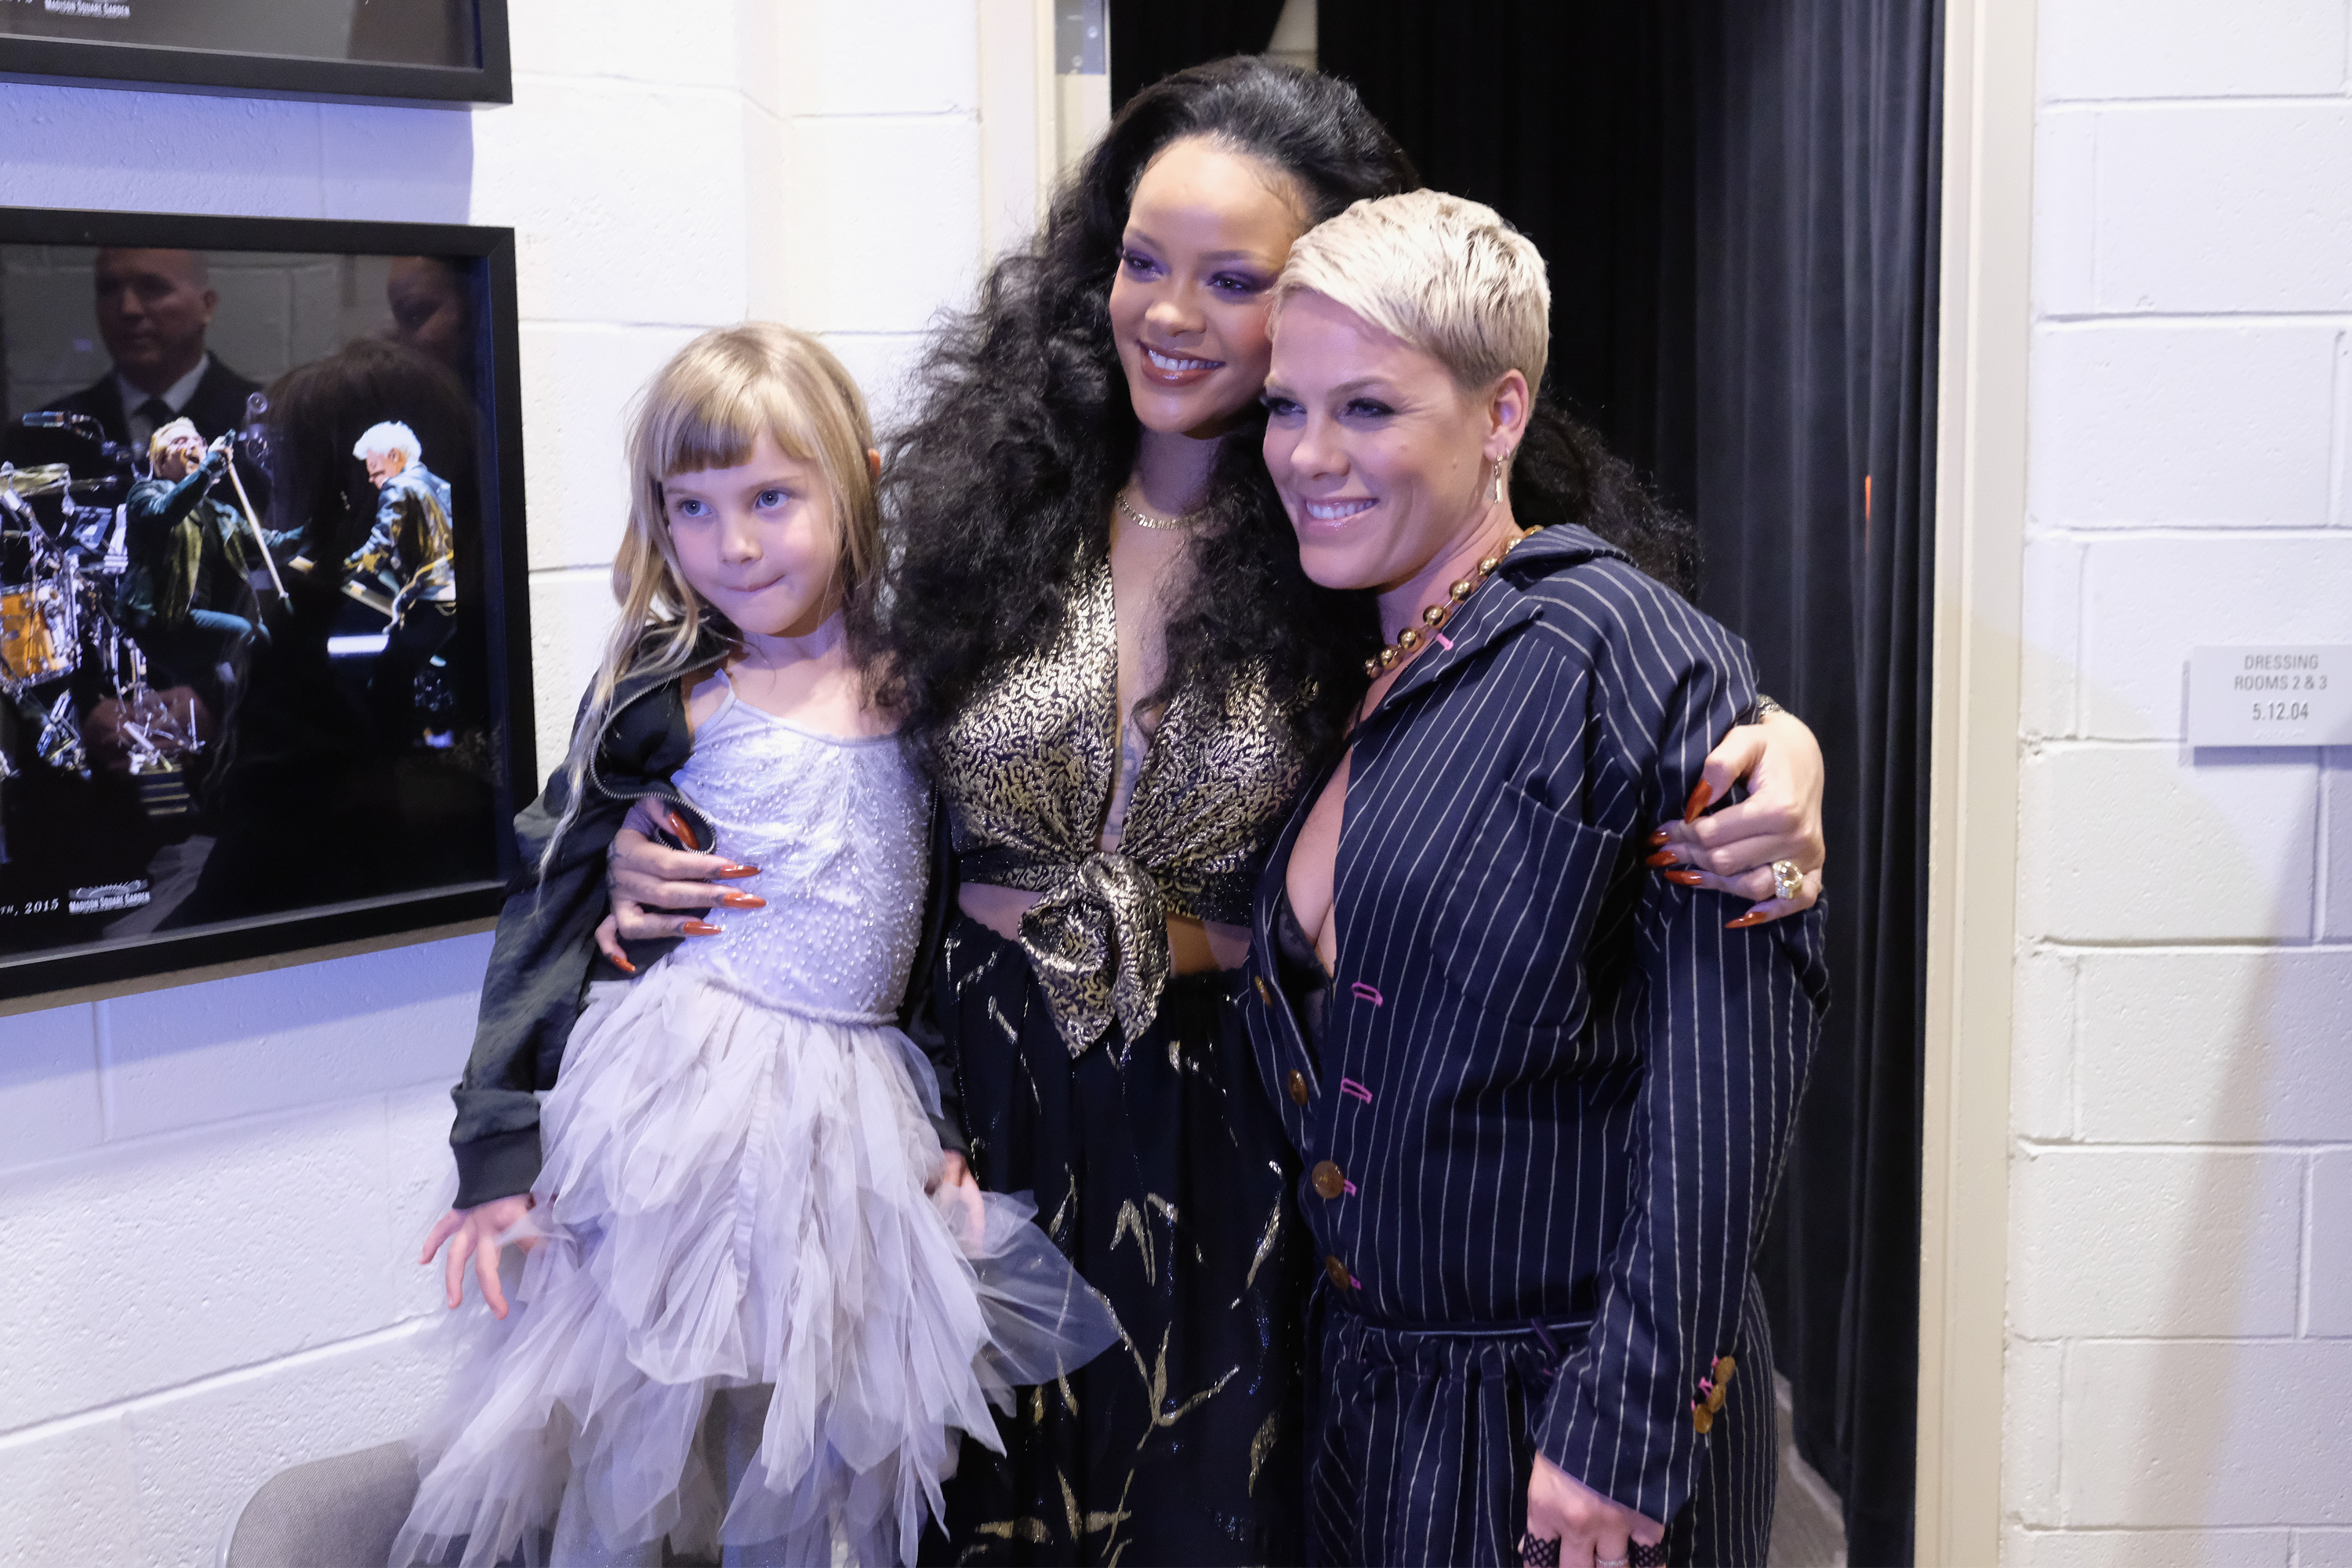 Willow Hart, recording artists Rihanna and Pink backstage at the 60th Annual GRAMMY Awards at Madison Square Garden on January 28, 2018 in New York City.